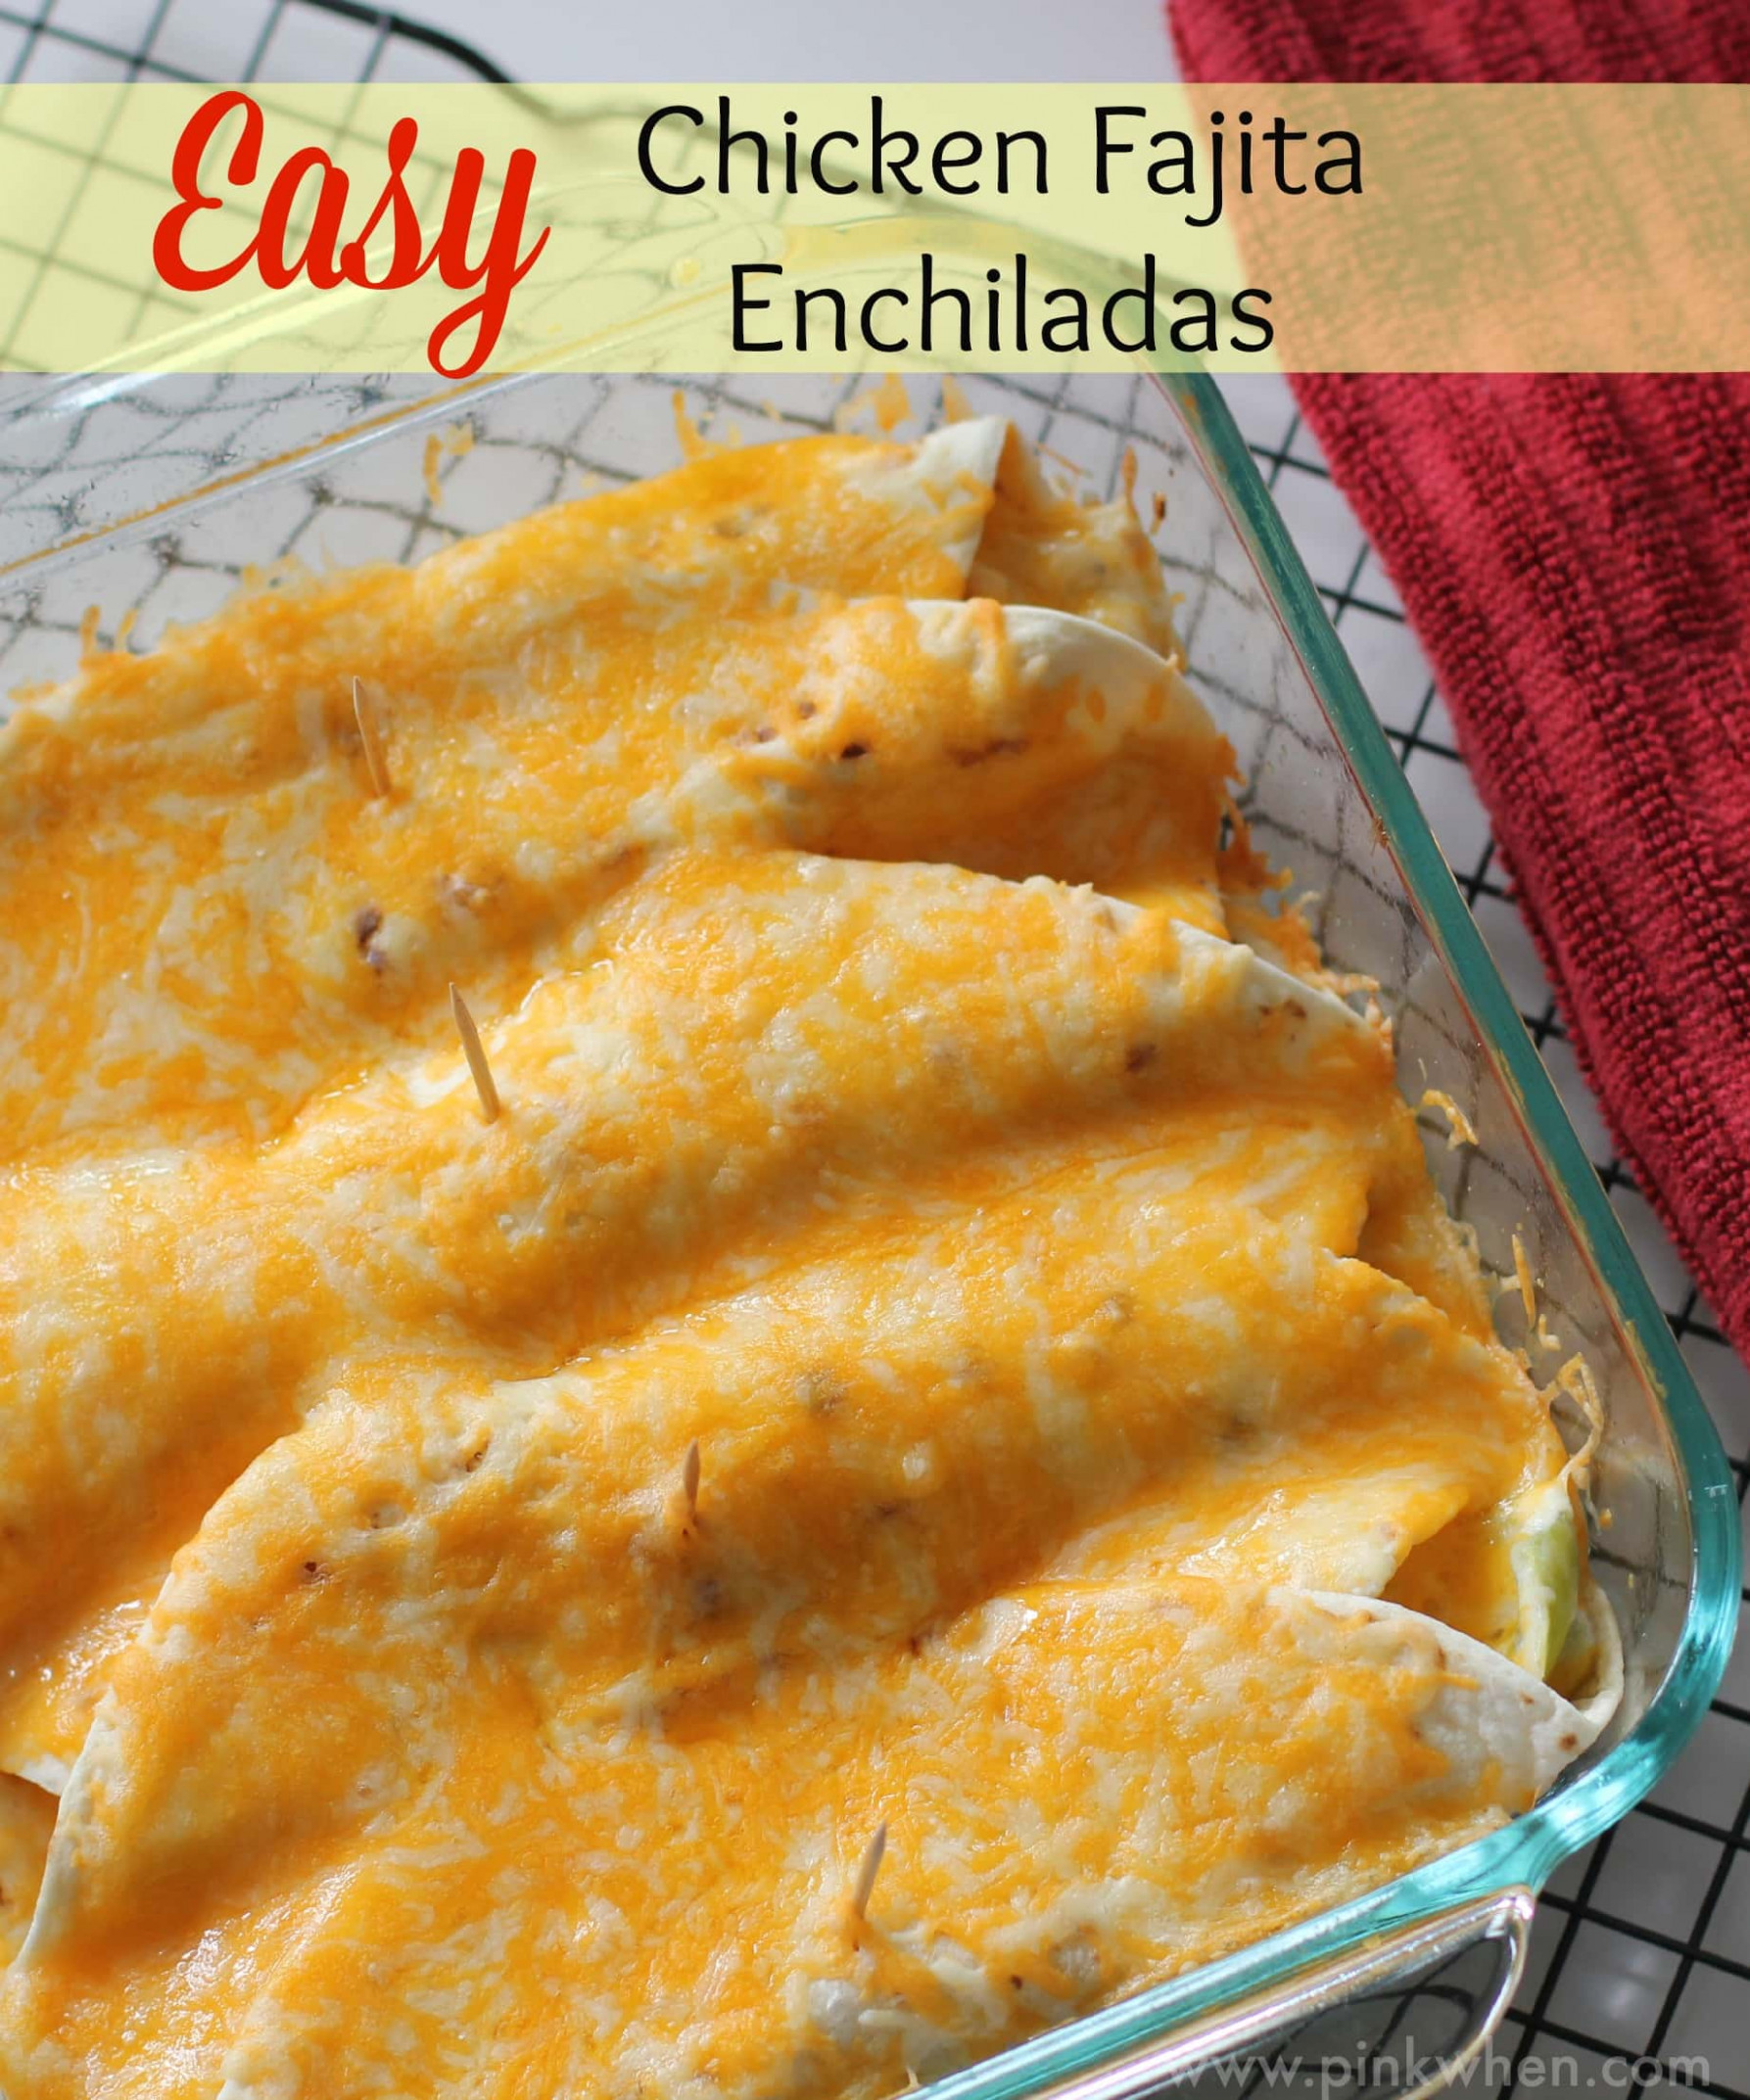 How to Make an Easy Chicken Enchilada Recipe - PinkWhen - chicken recipes quick